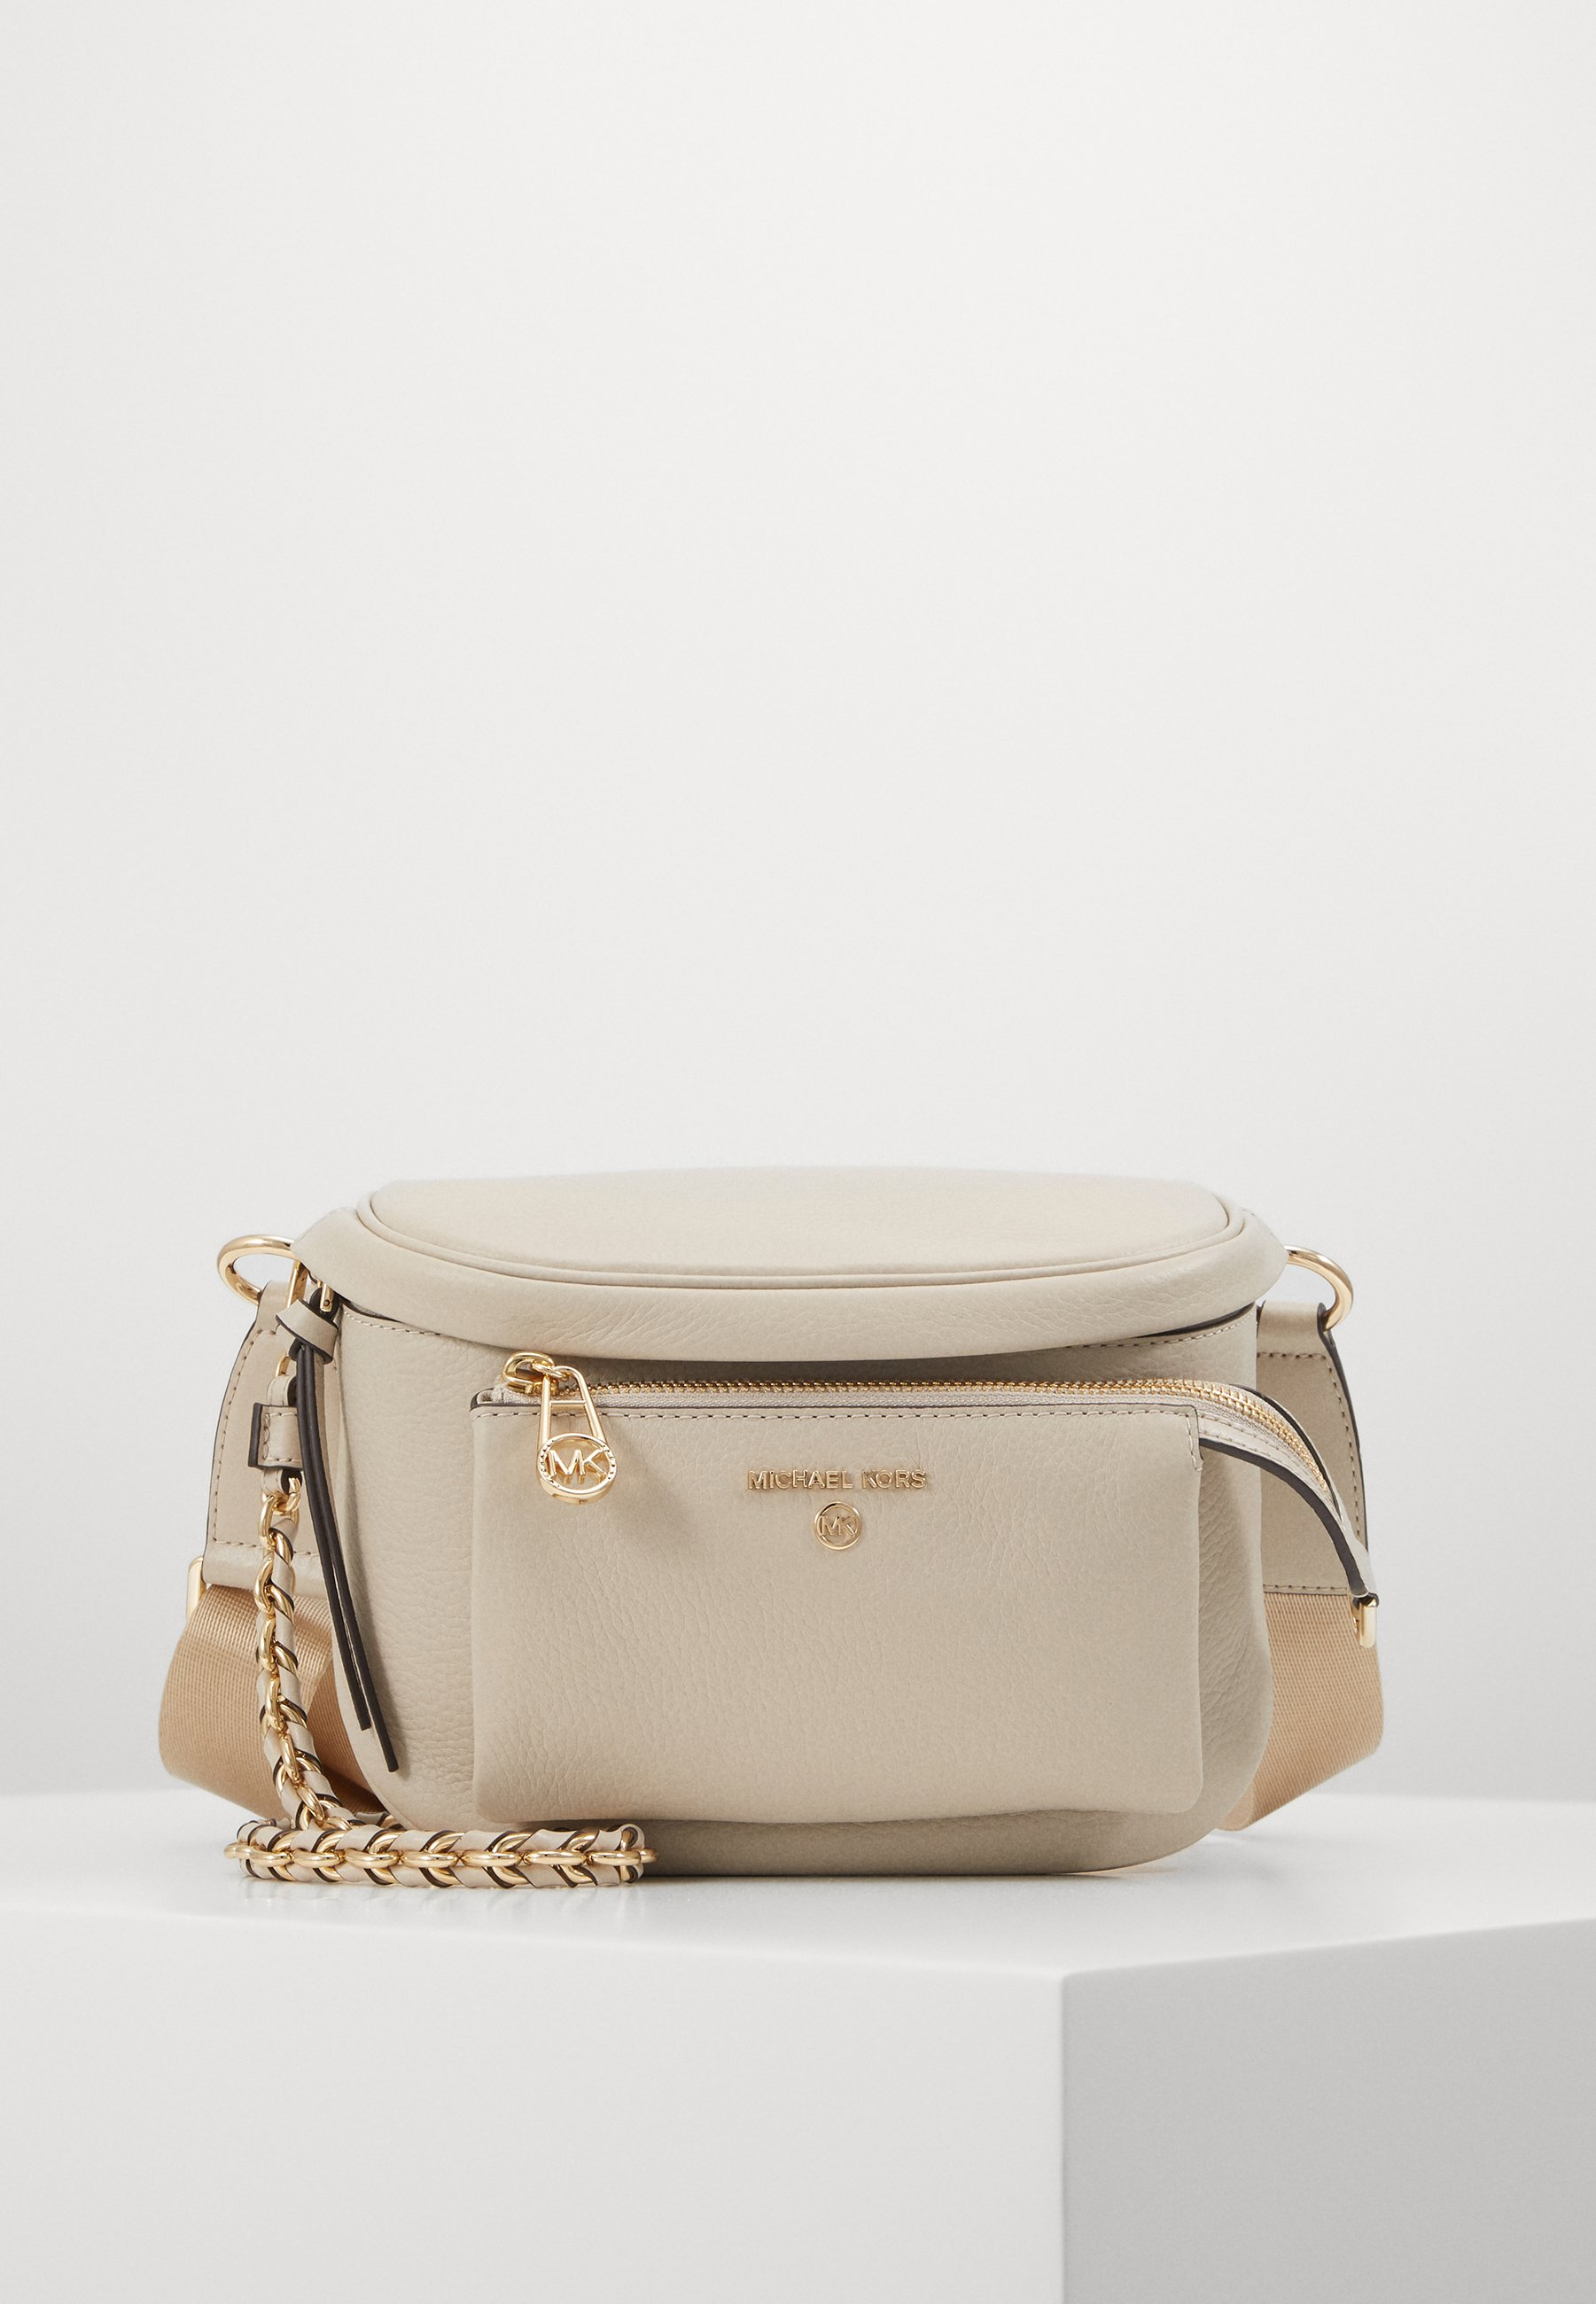 SLING Sac bandoulière light sand